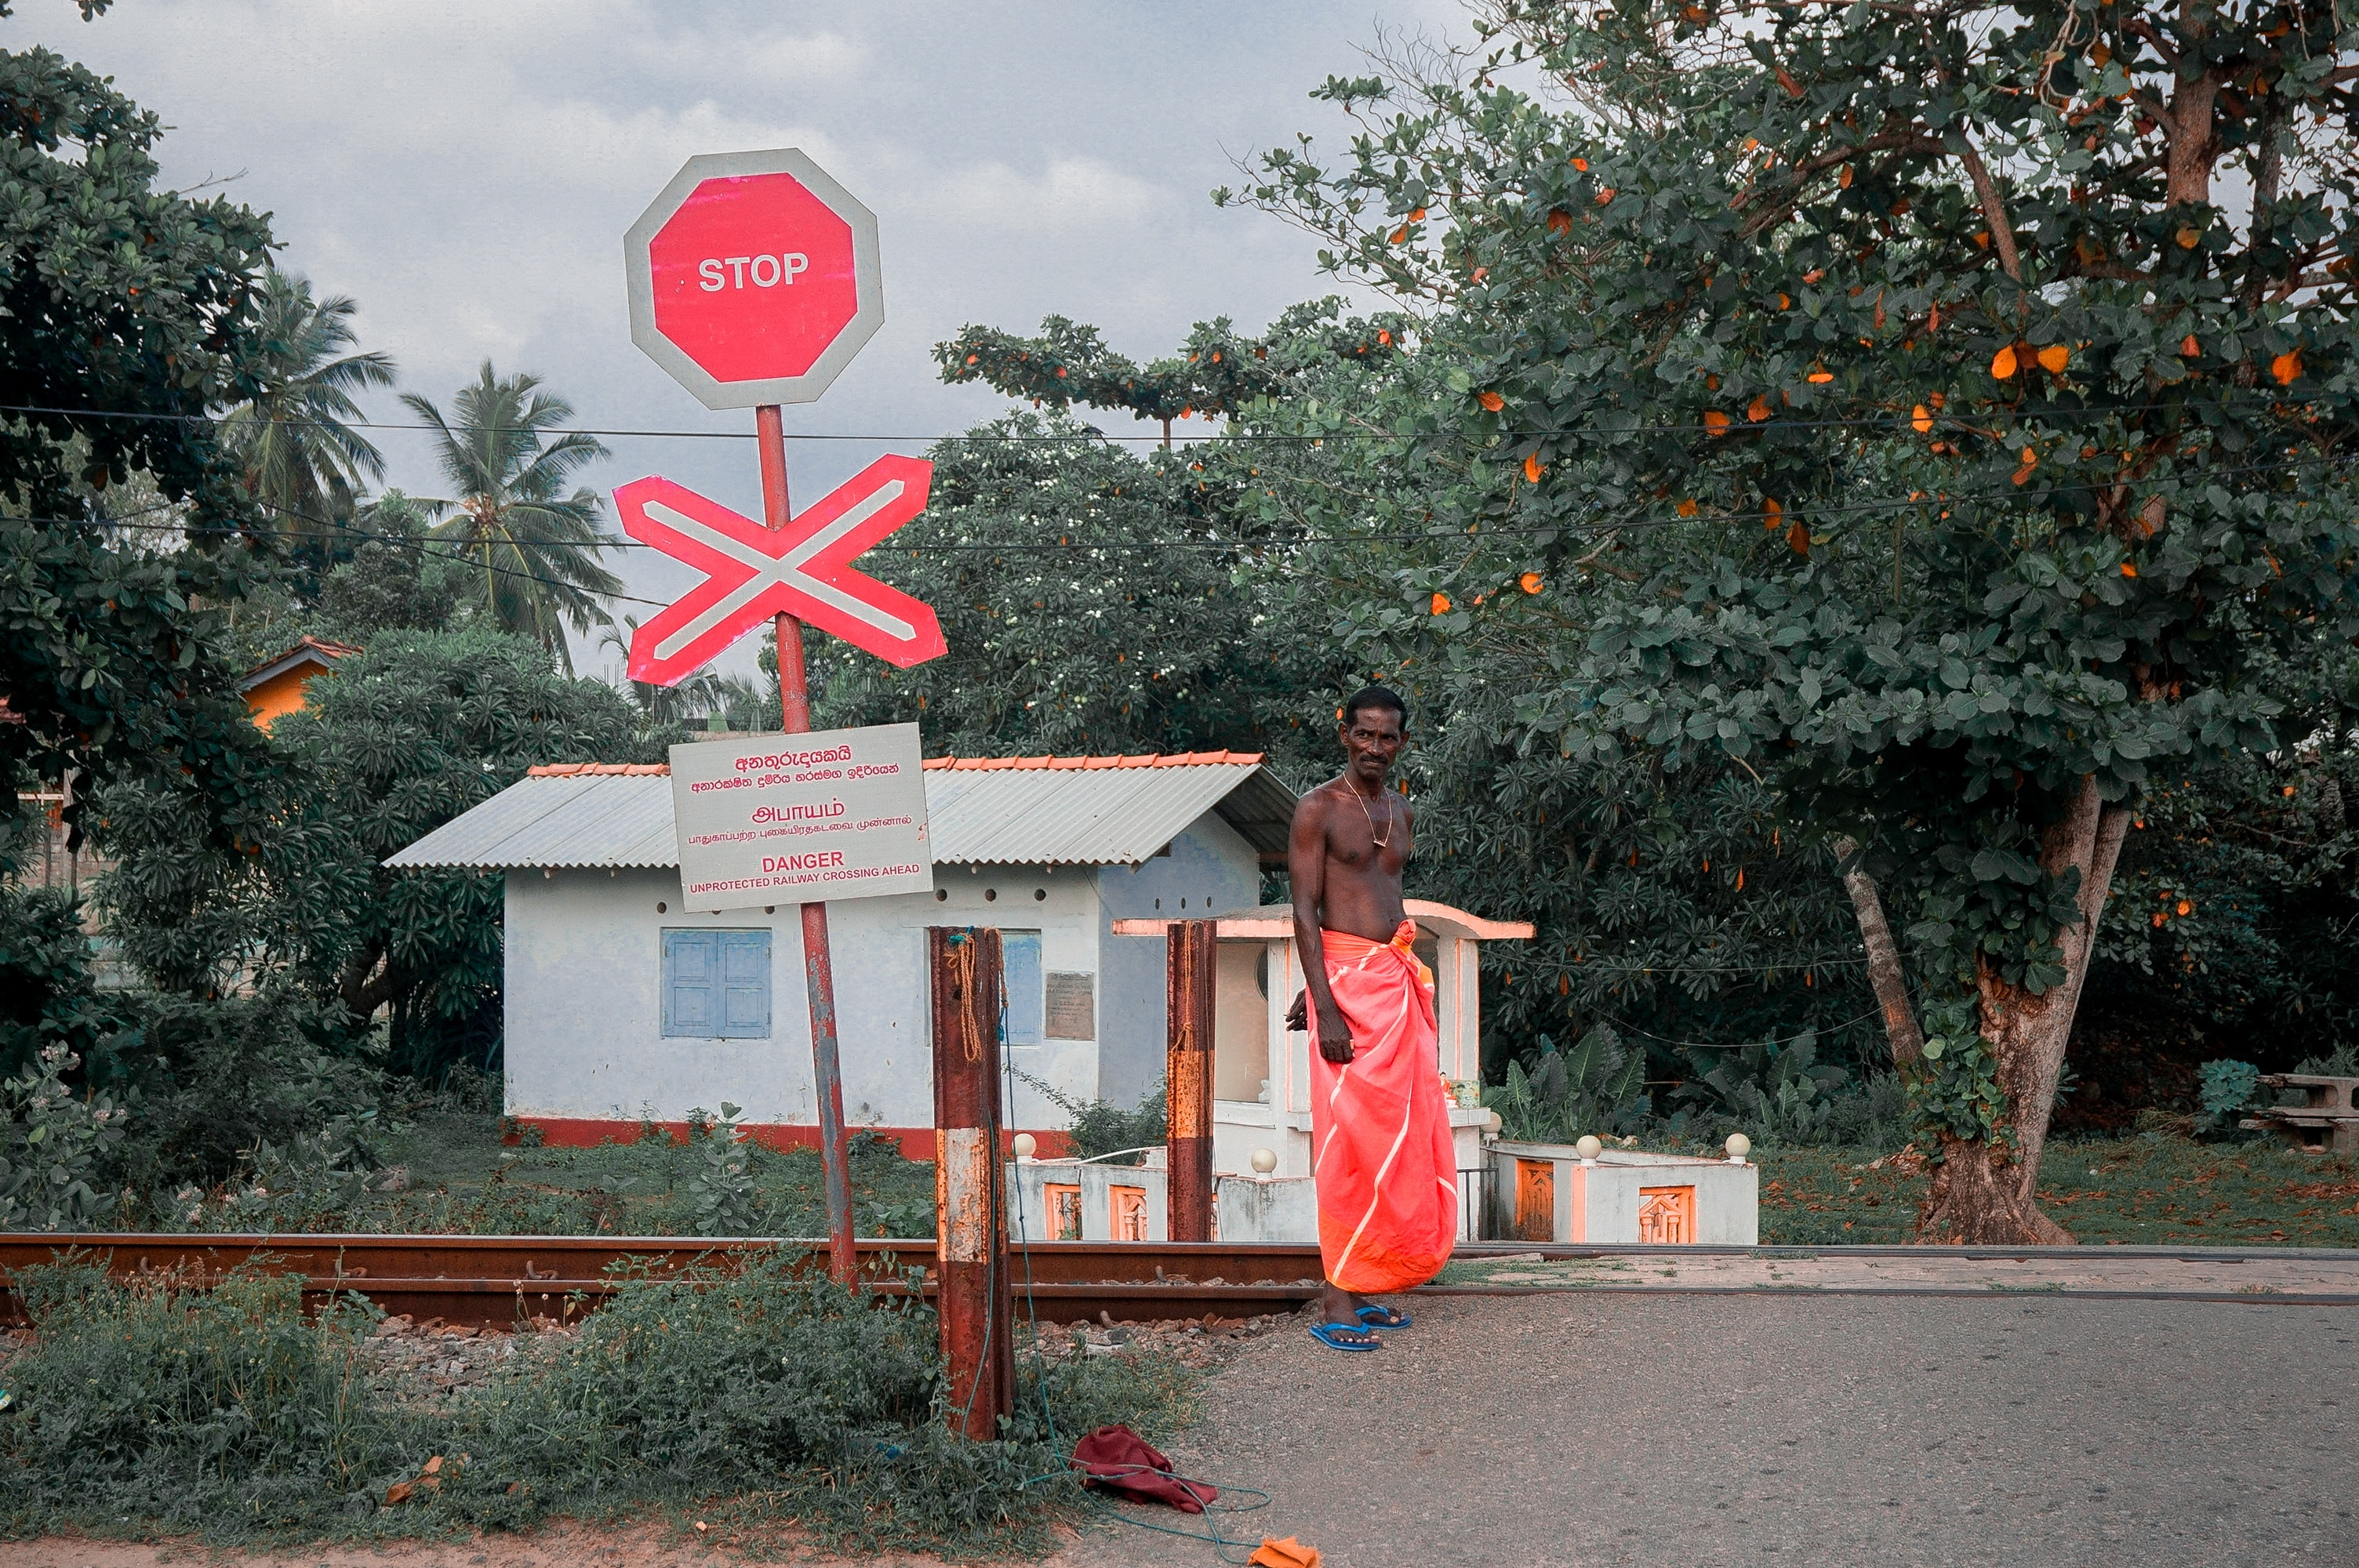 A man wrapped in a sarong stands by a stop sign along railway tracks and trees